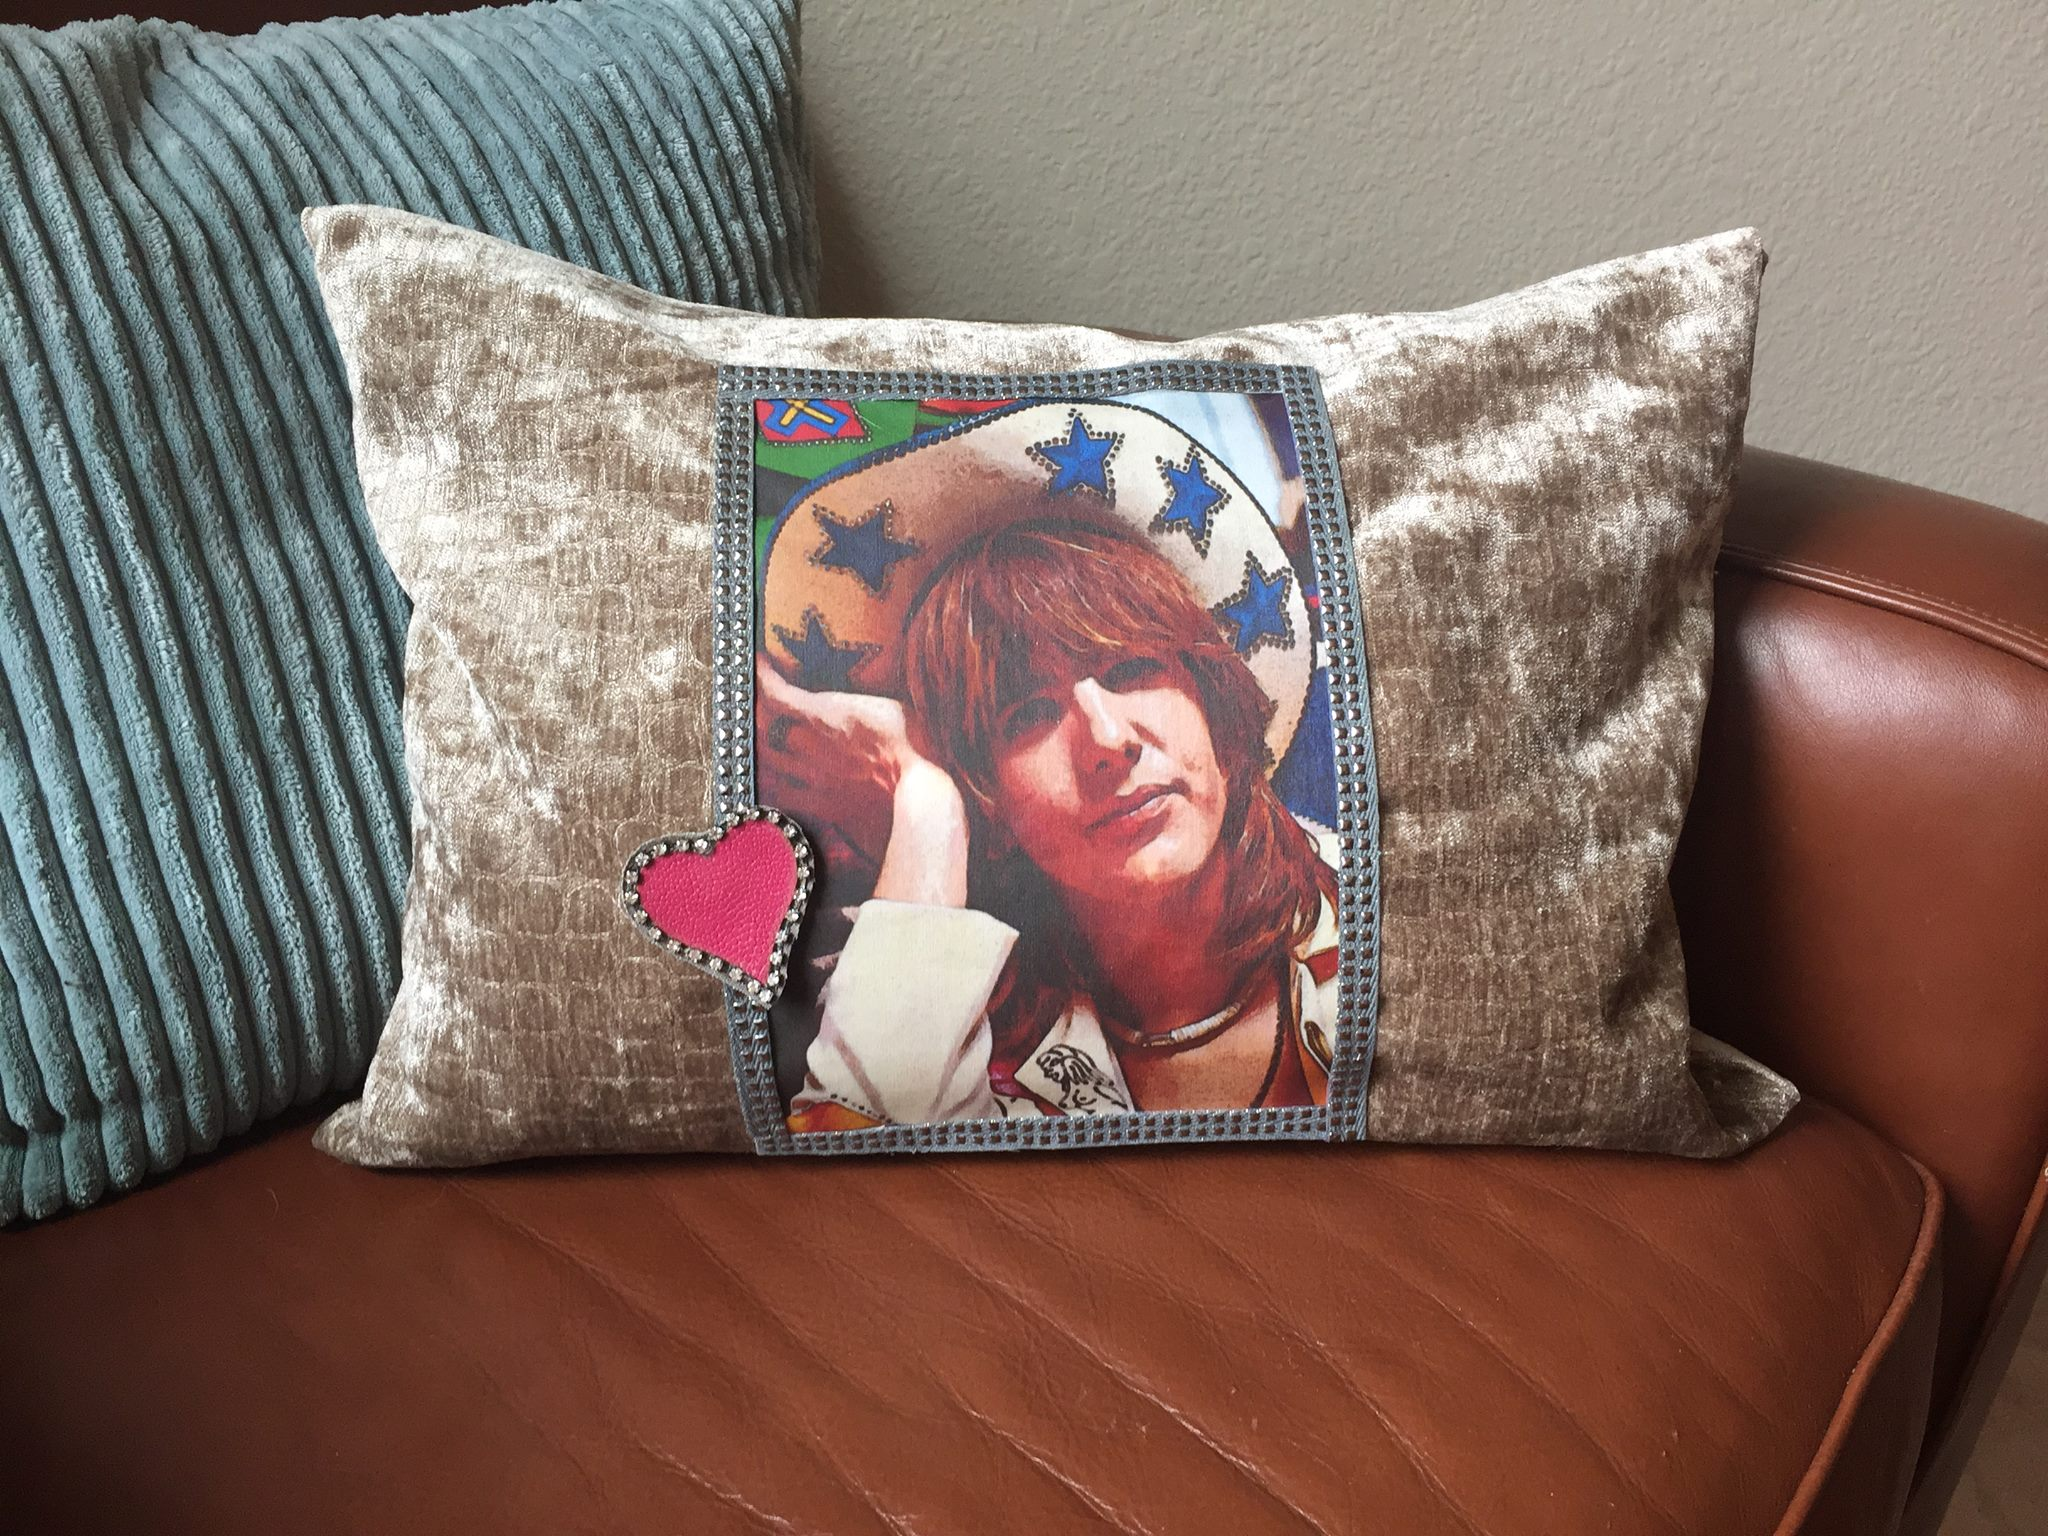 Please note that image is now slightly smaller to better fit the pillow size.